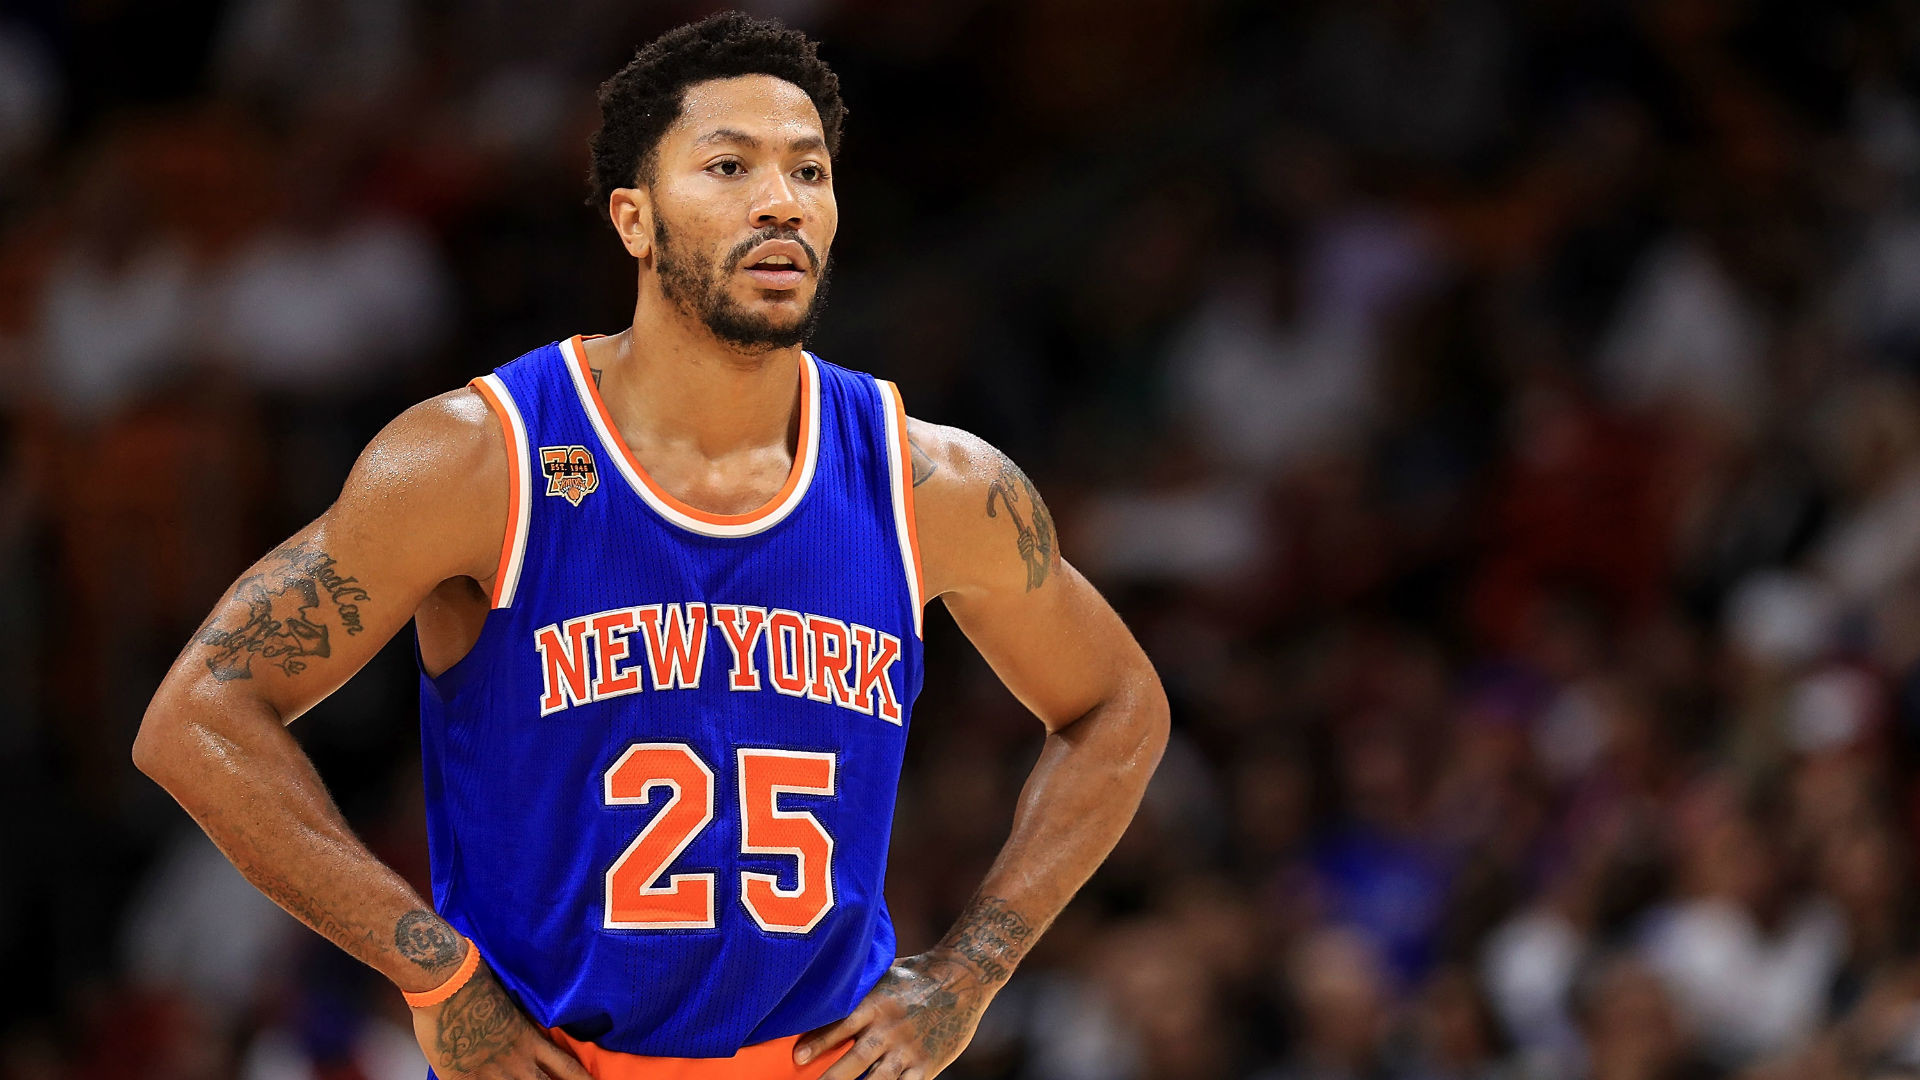 1920x1080 NBA free agency: Derrick Rose to meet with L.A. Clippers, report says | NBA  | Sporting News